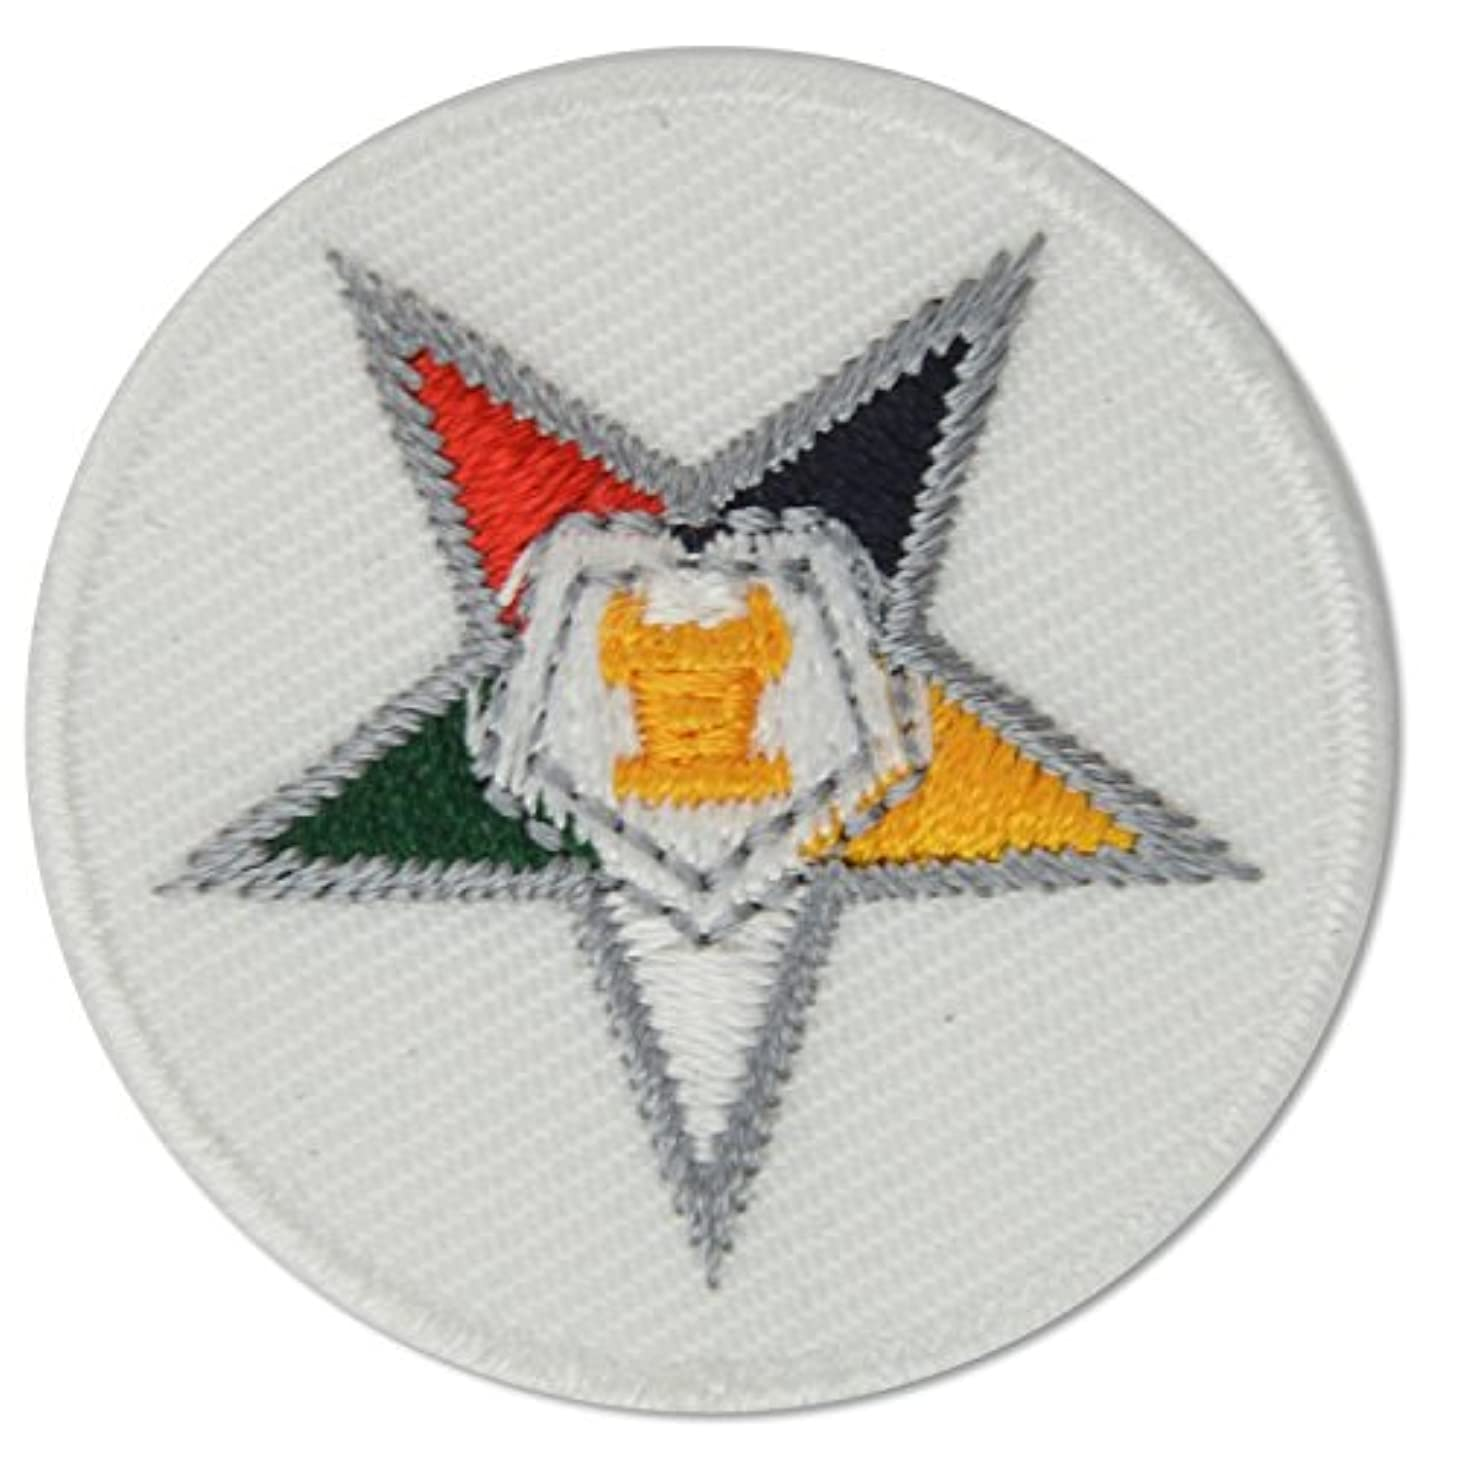 Order of The Eastern Star Embroidered Masonic Patch - 1 1/2